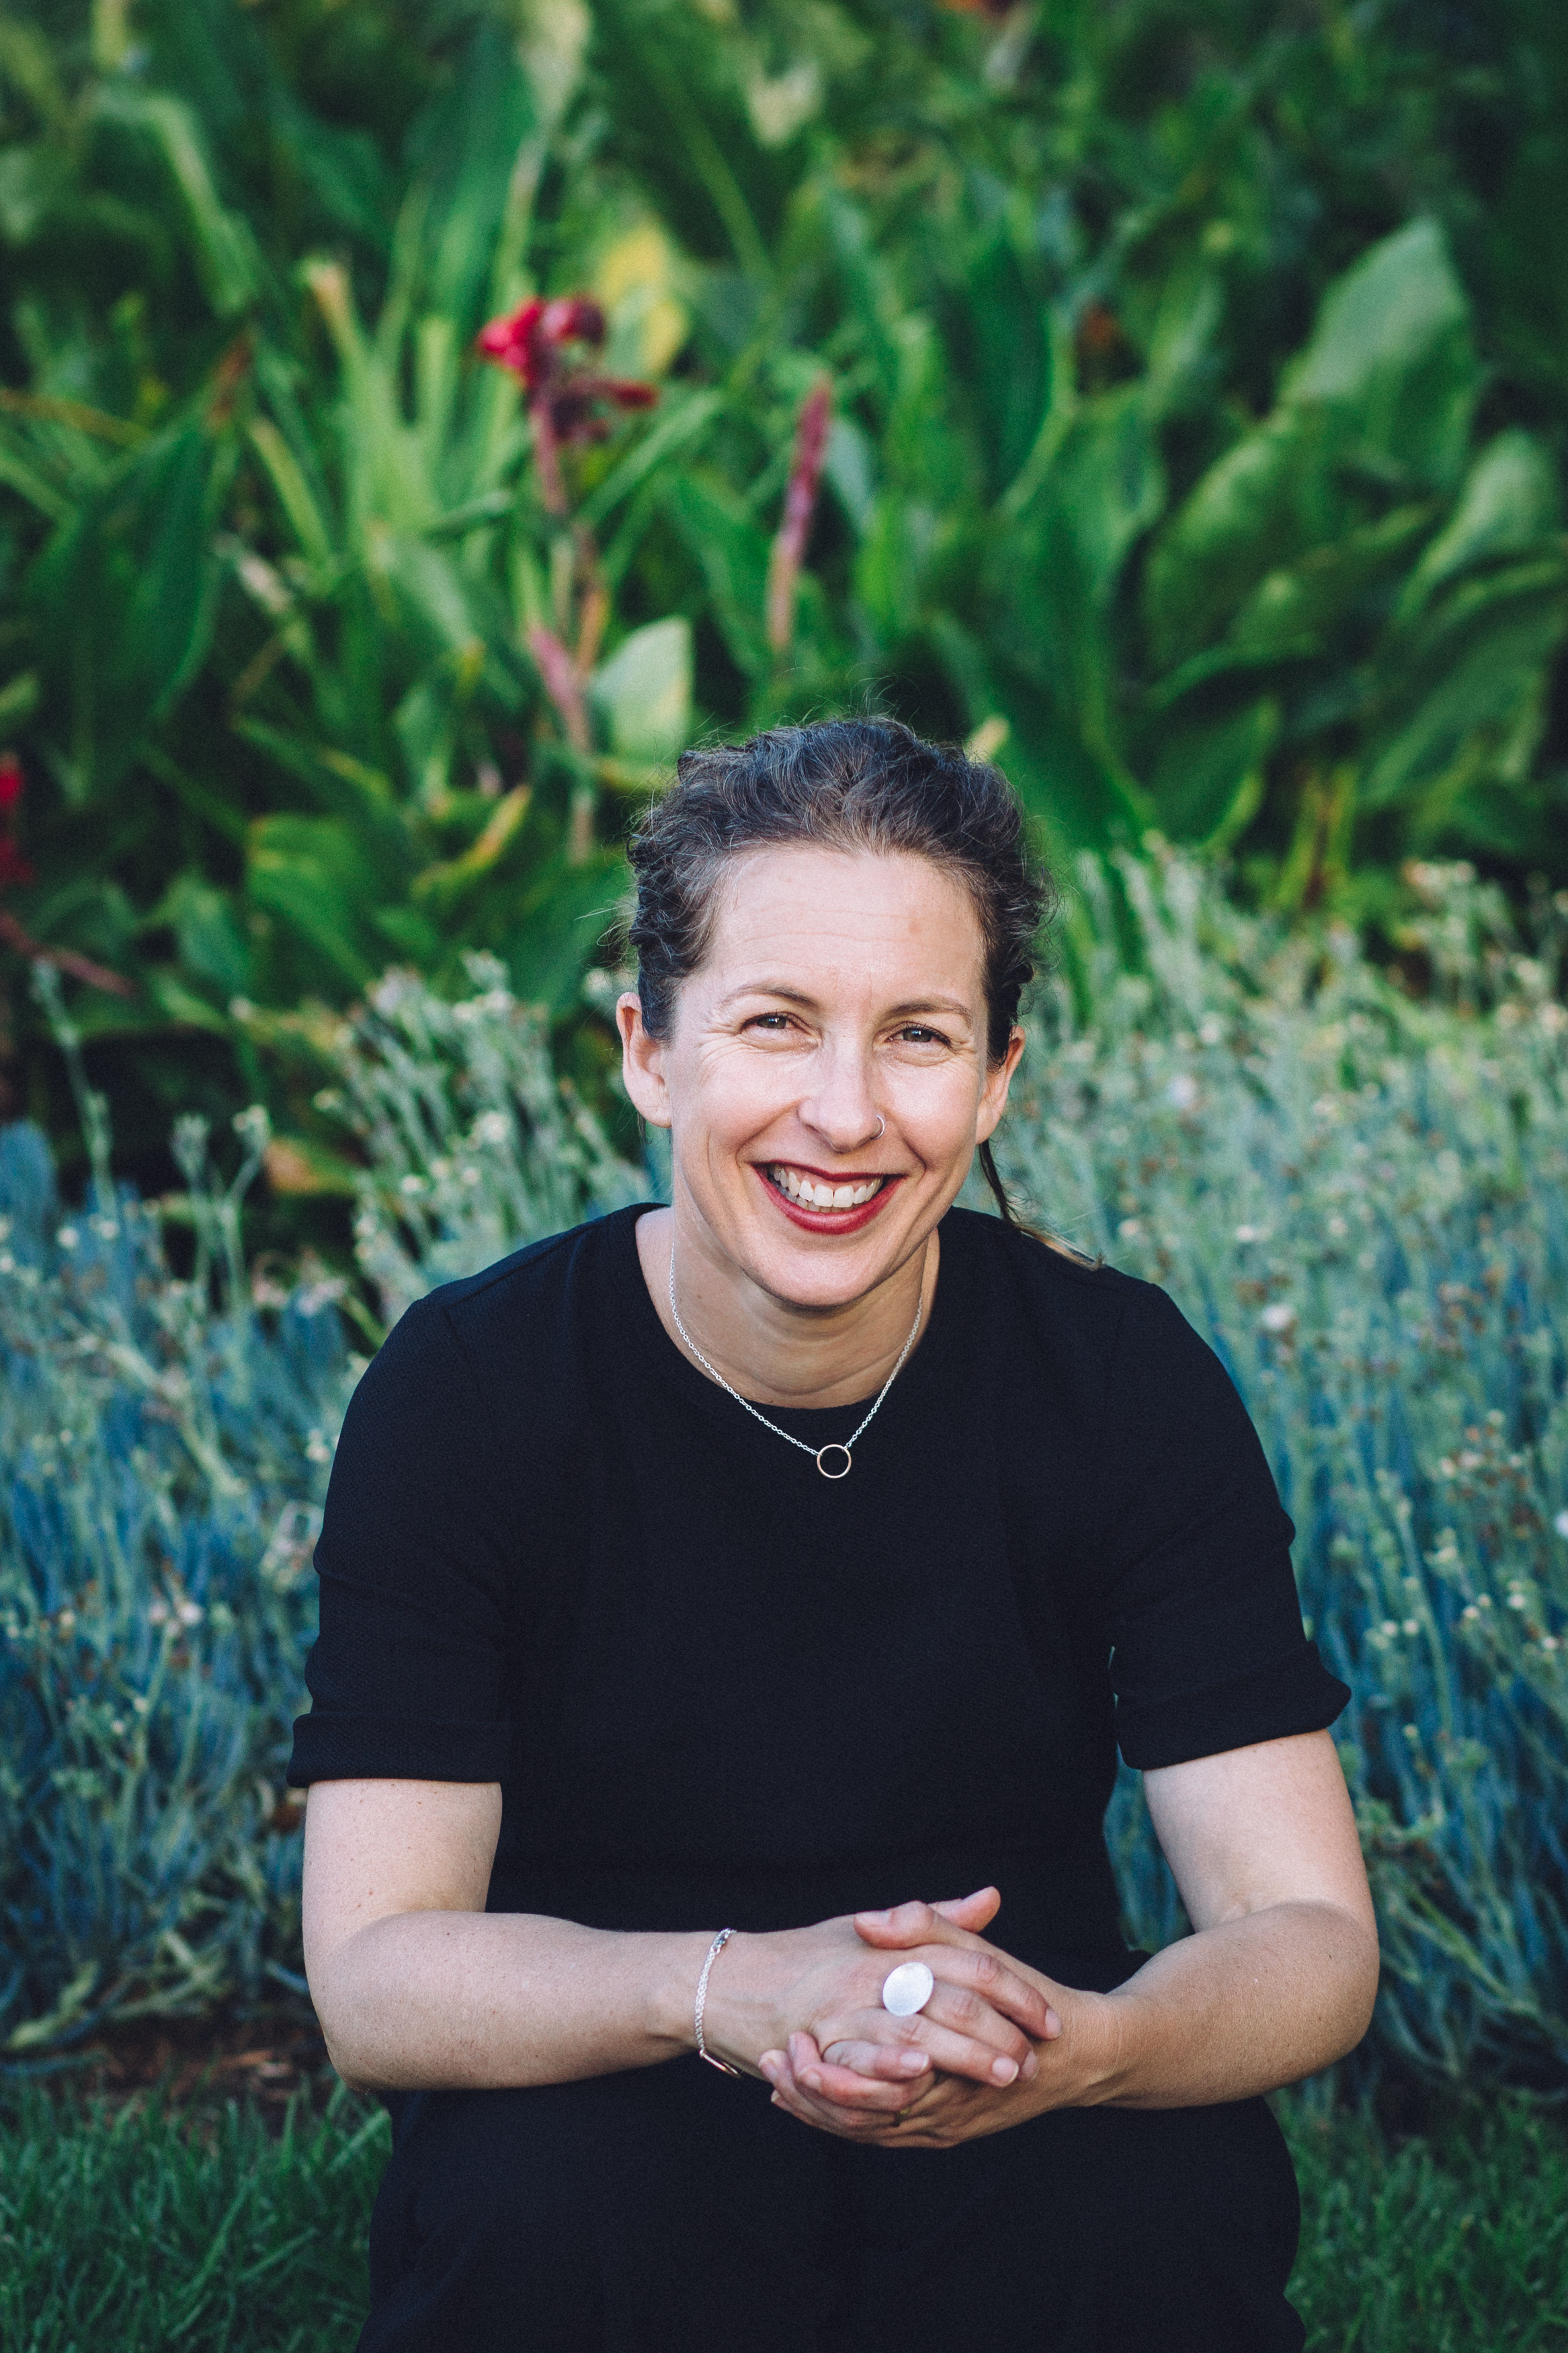 Sarah Rood, Bachelor of Arts (Honours), Master of Public History   Member, Professional Historians Association (Victoria) Member, Oral History Victoria Member, Australian Gay & Lesbian Archives Committee